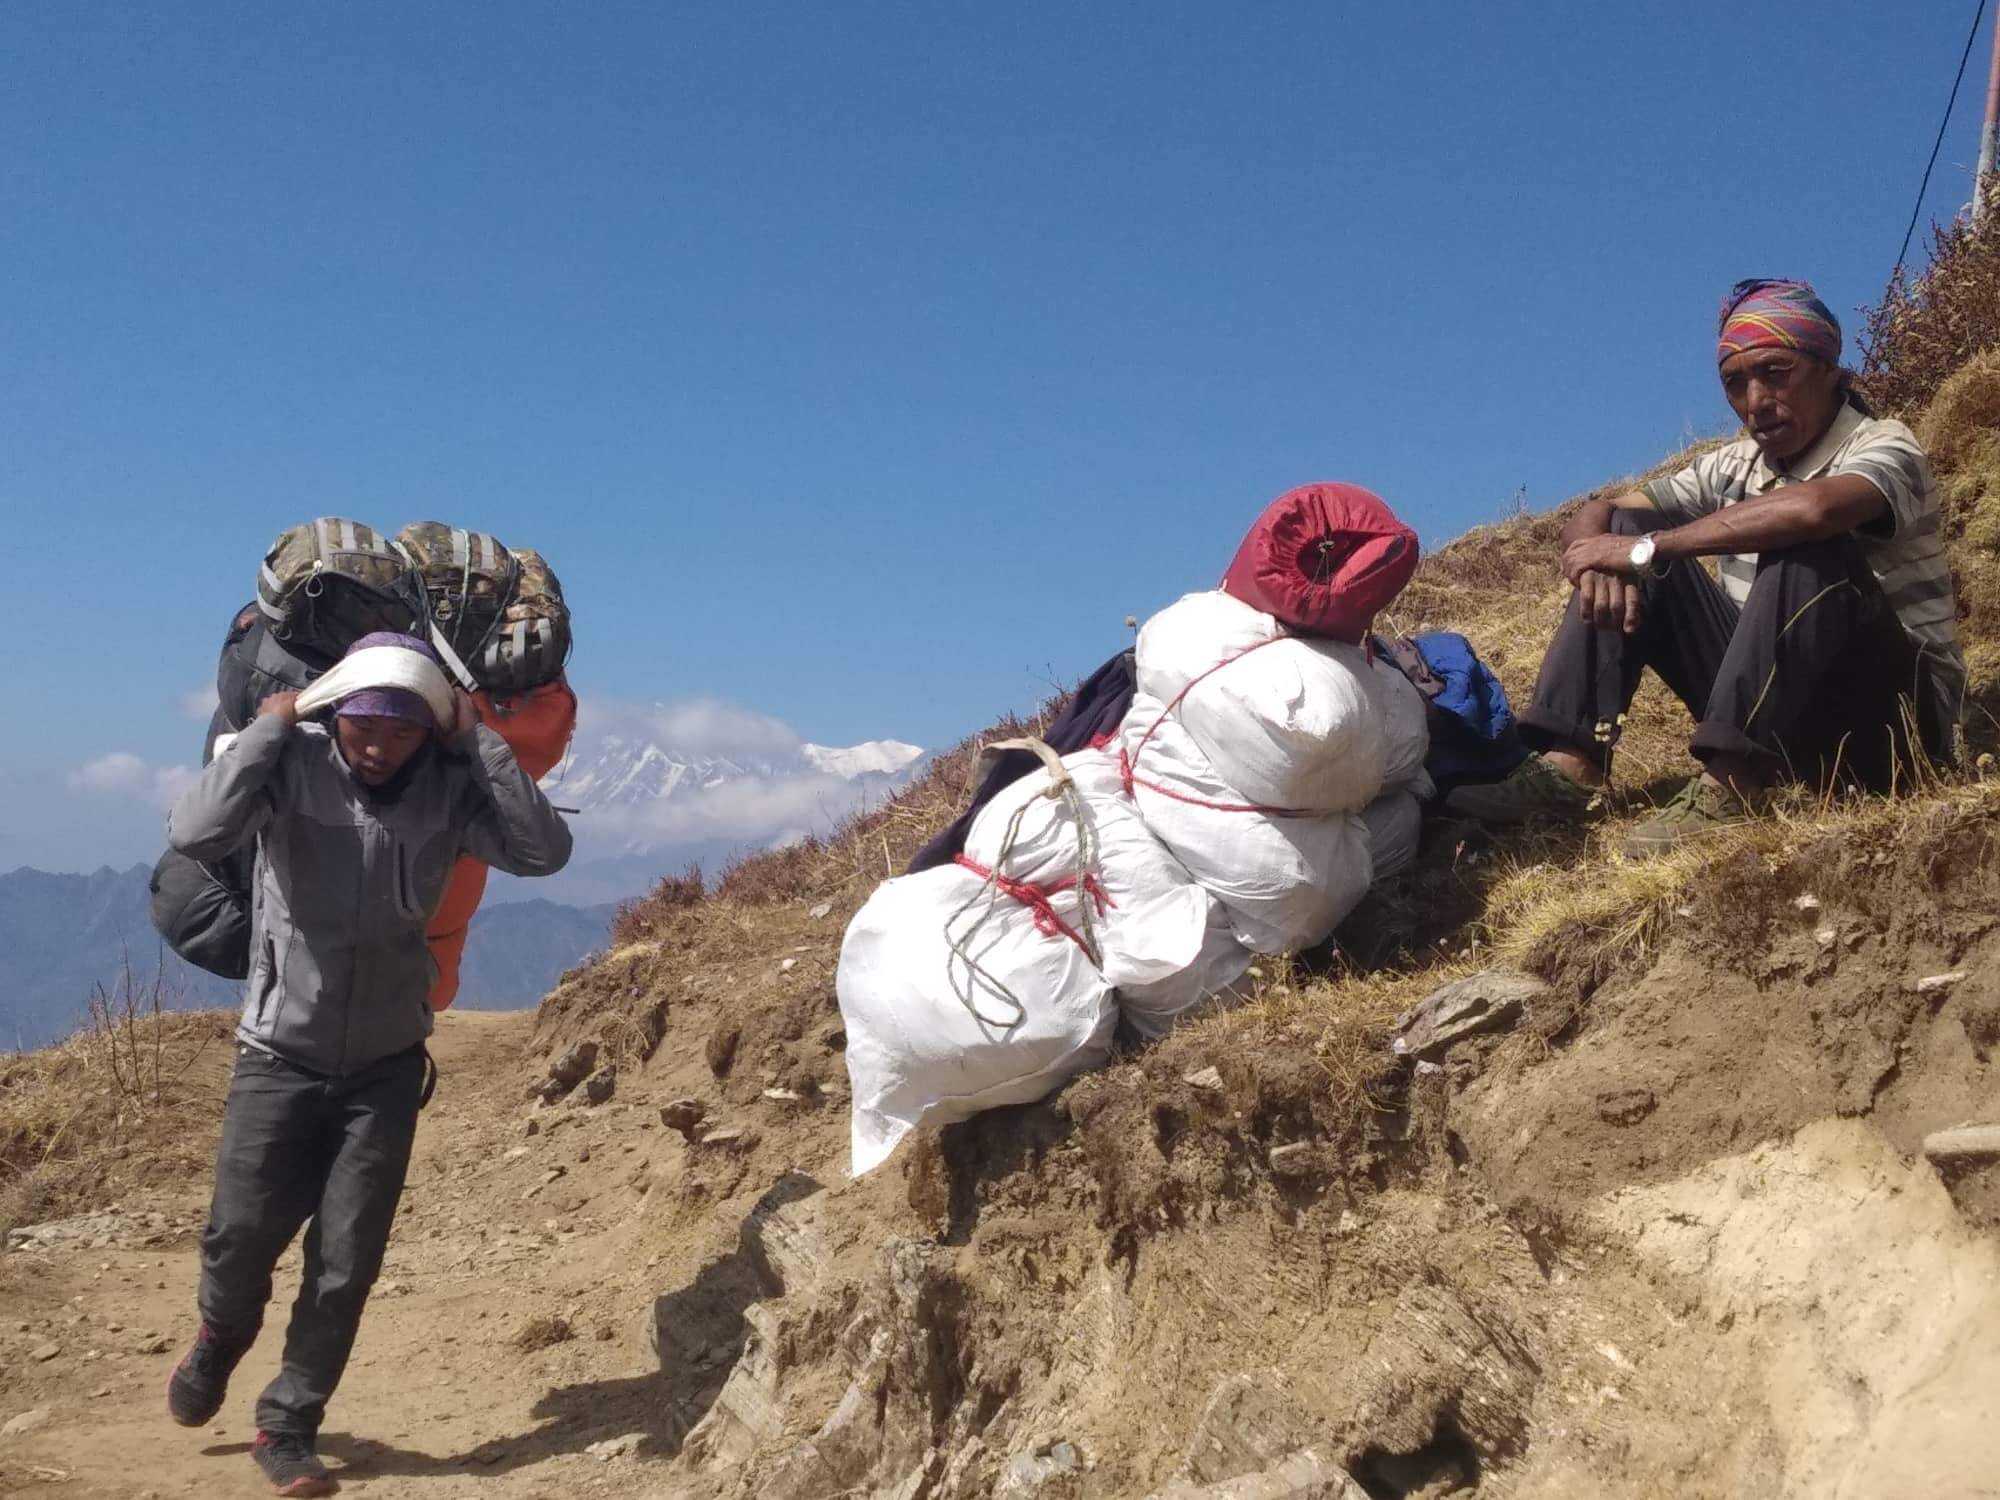 Porters and tourists make their way to Khopra Danda, Myagdi. Thousands of Nepalis are employed as porters and guides in the tourism industry and end up missing Dashain and Tihar festivals, which fall during the peak trekking season of autumn.